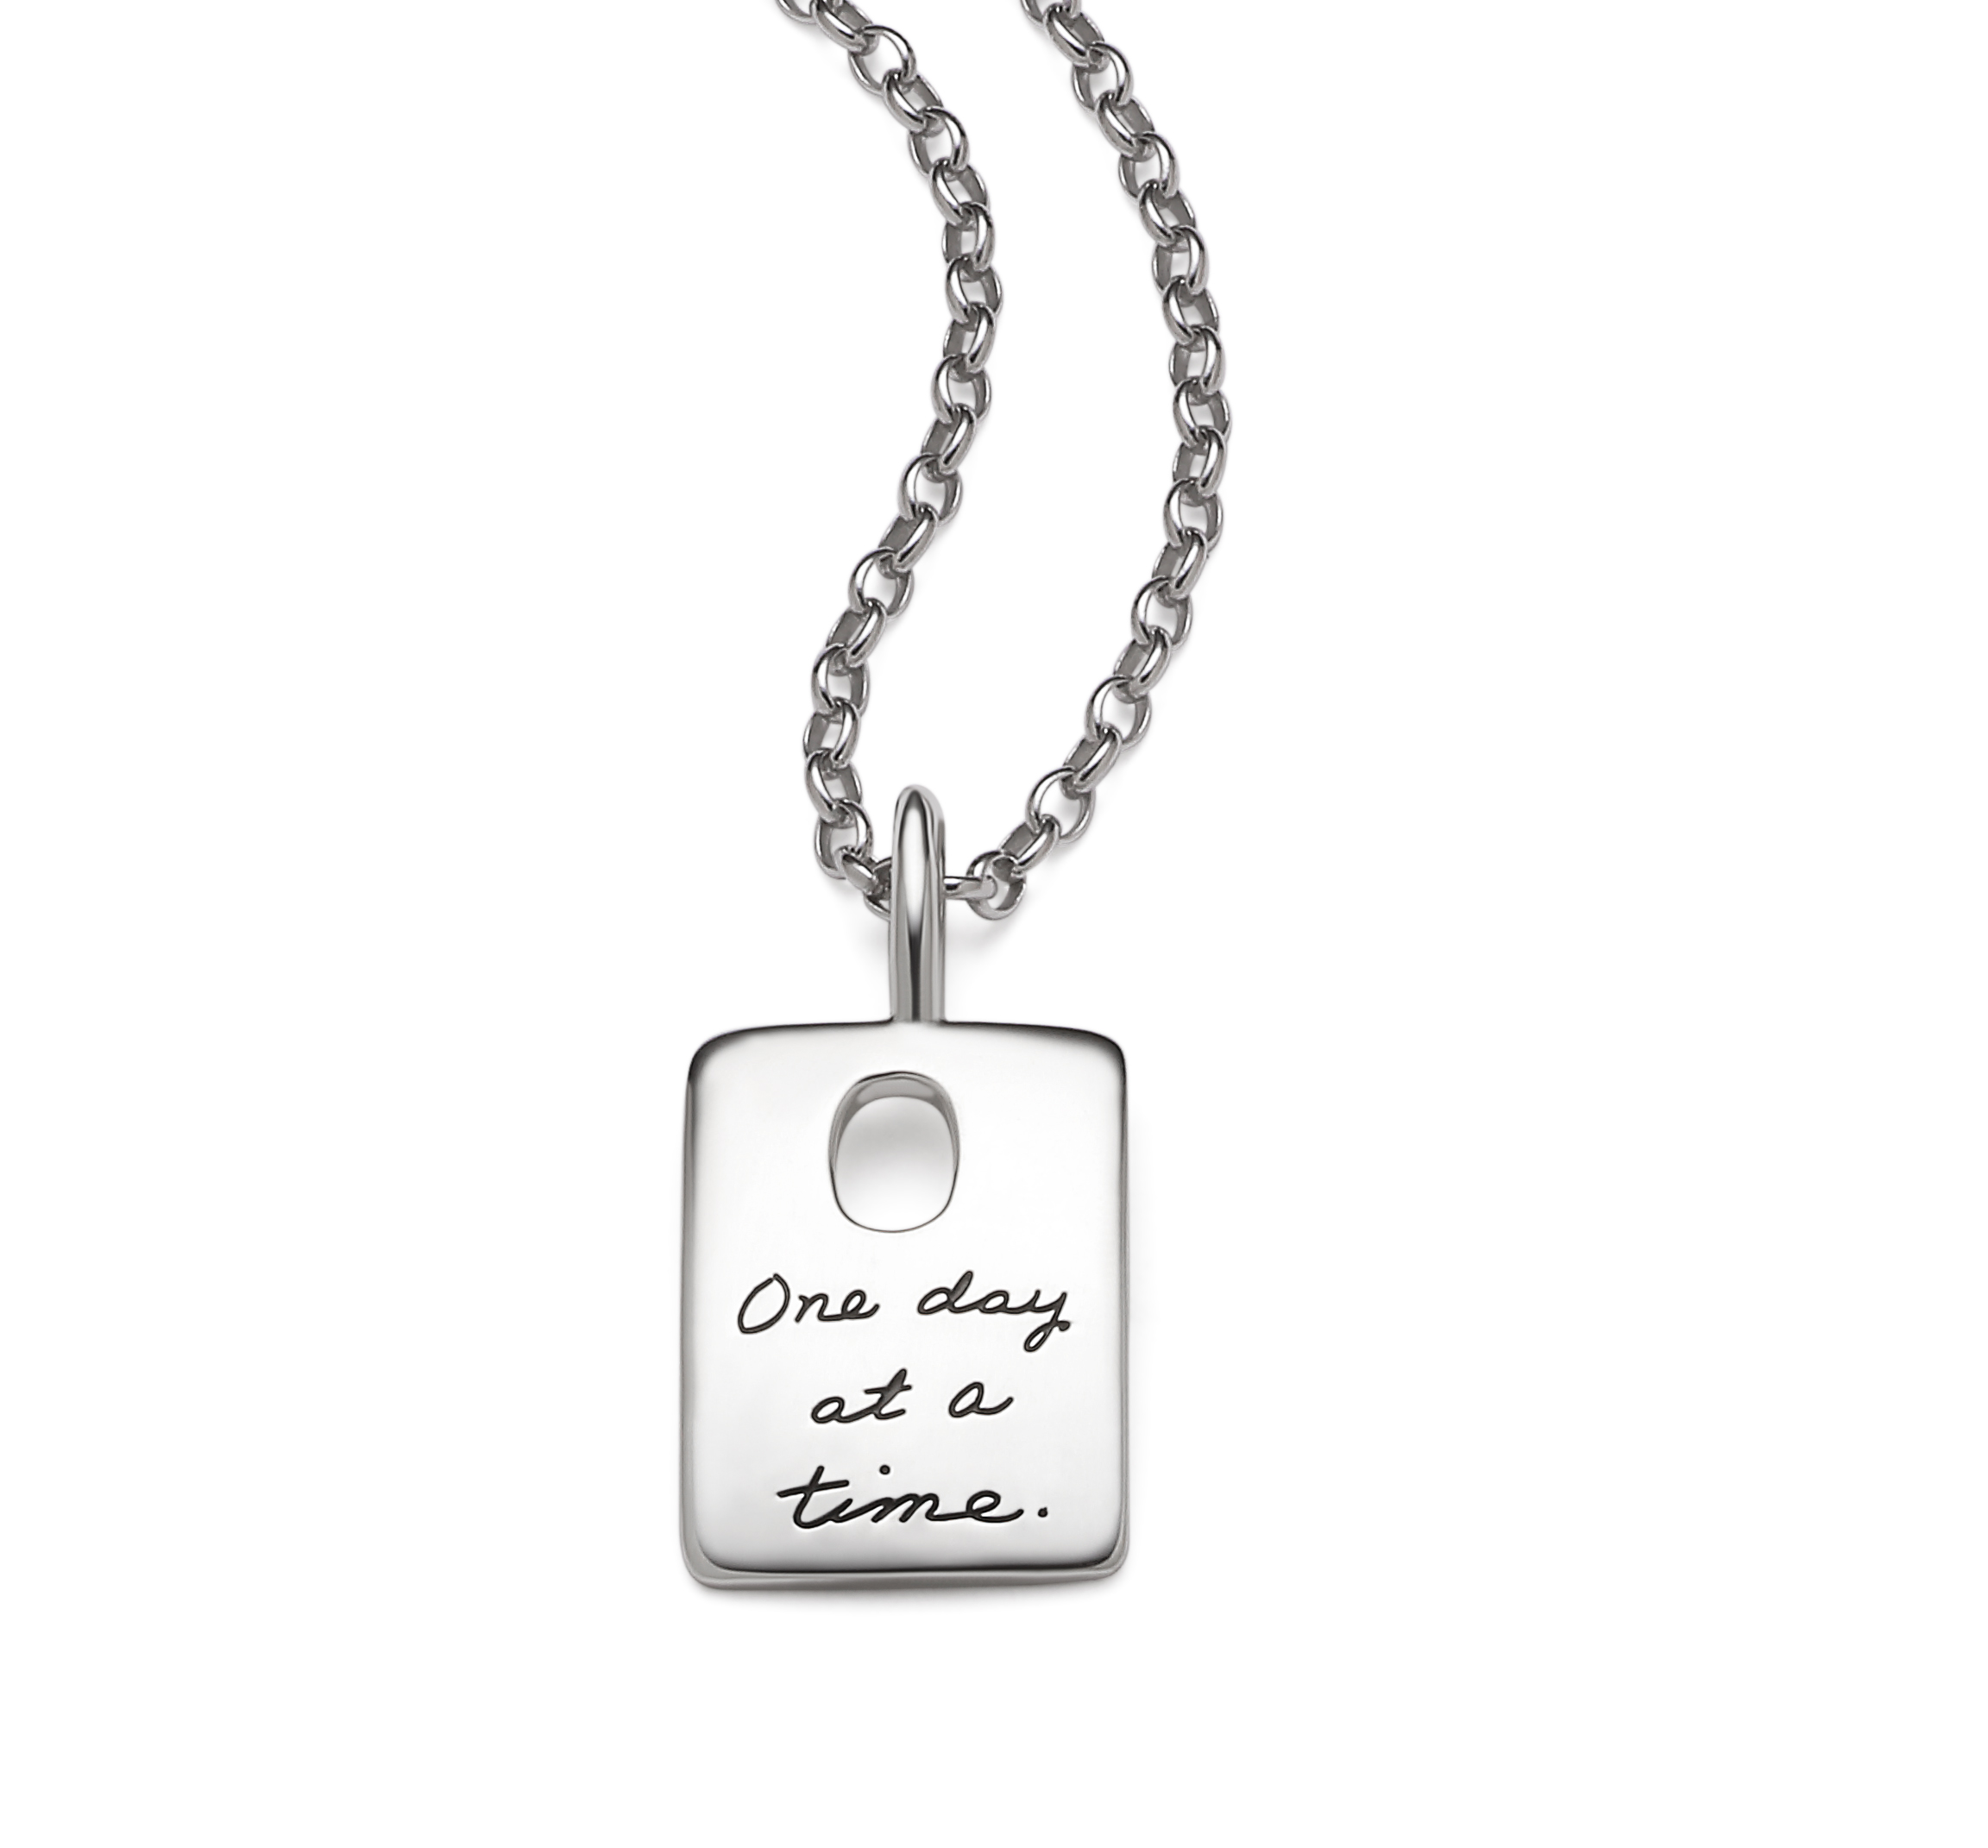 Inspirational Sterling Silver Pendant rectangle shaped with a oval cutout near the top engraved quote reads: One day at a time.